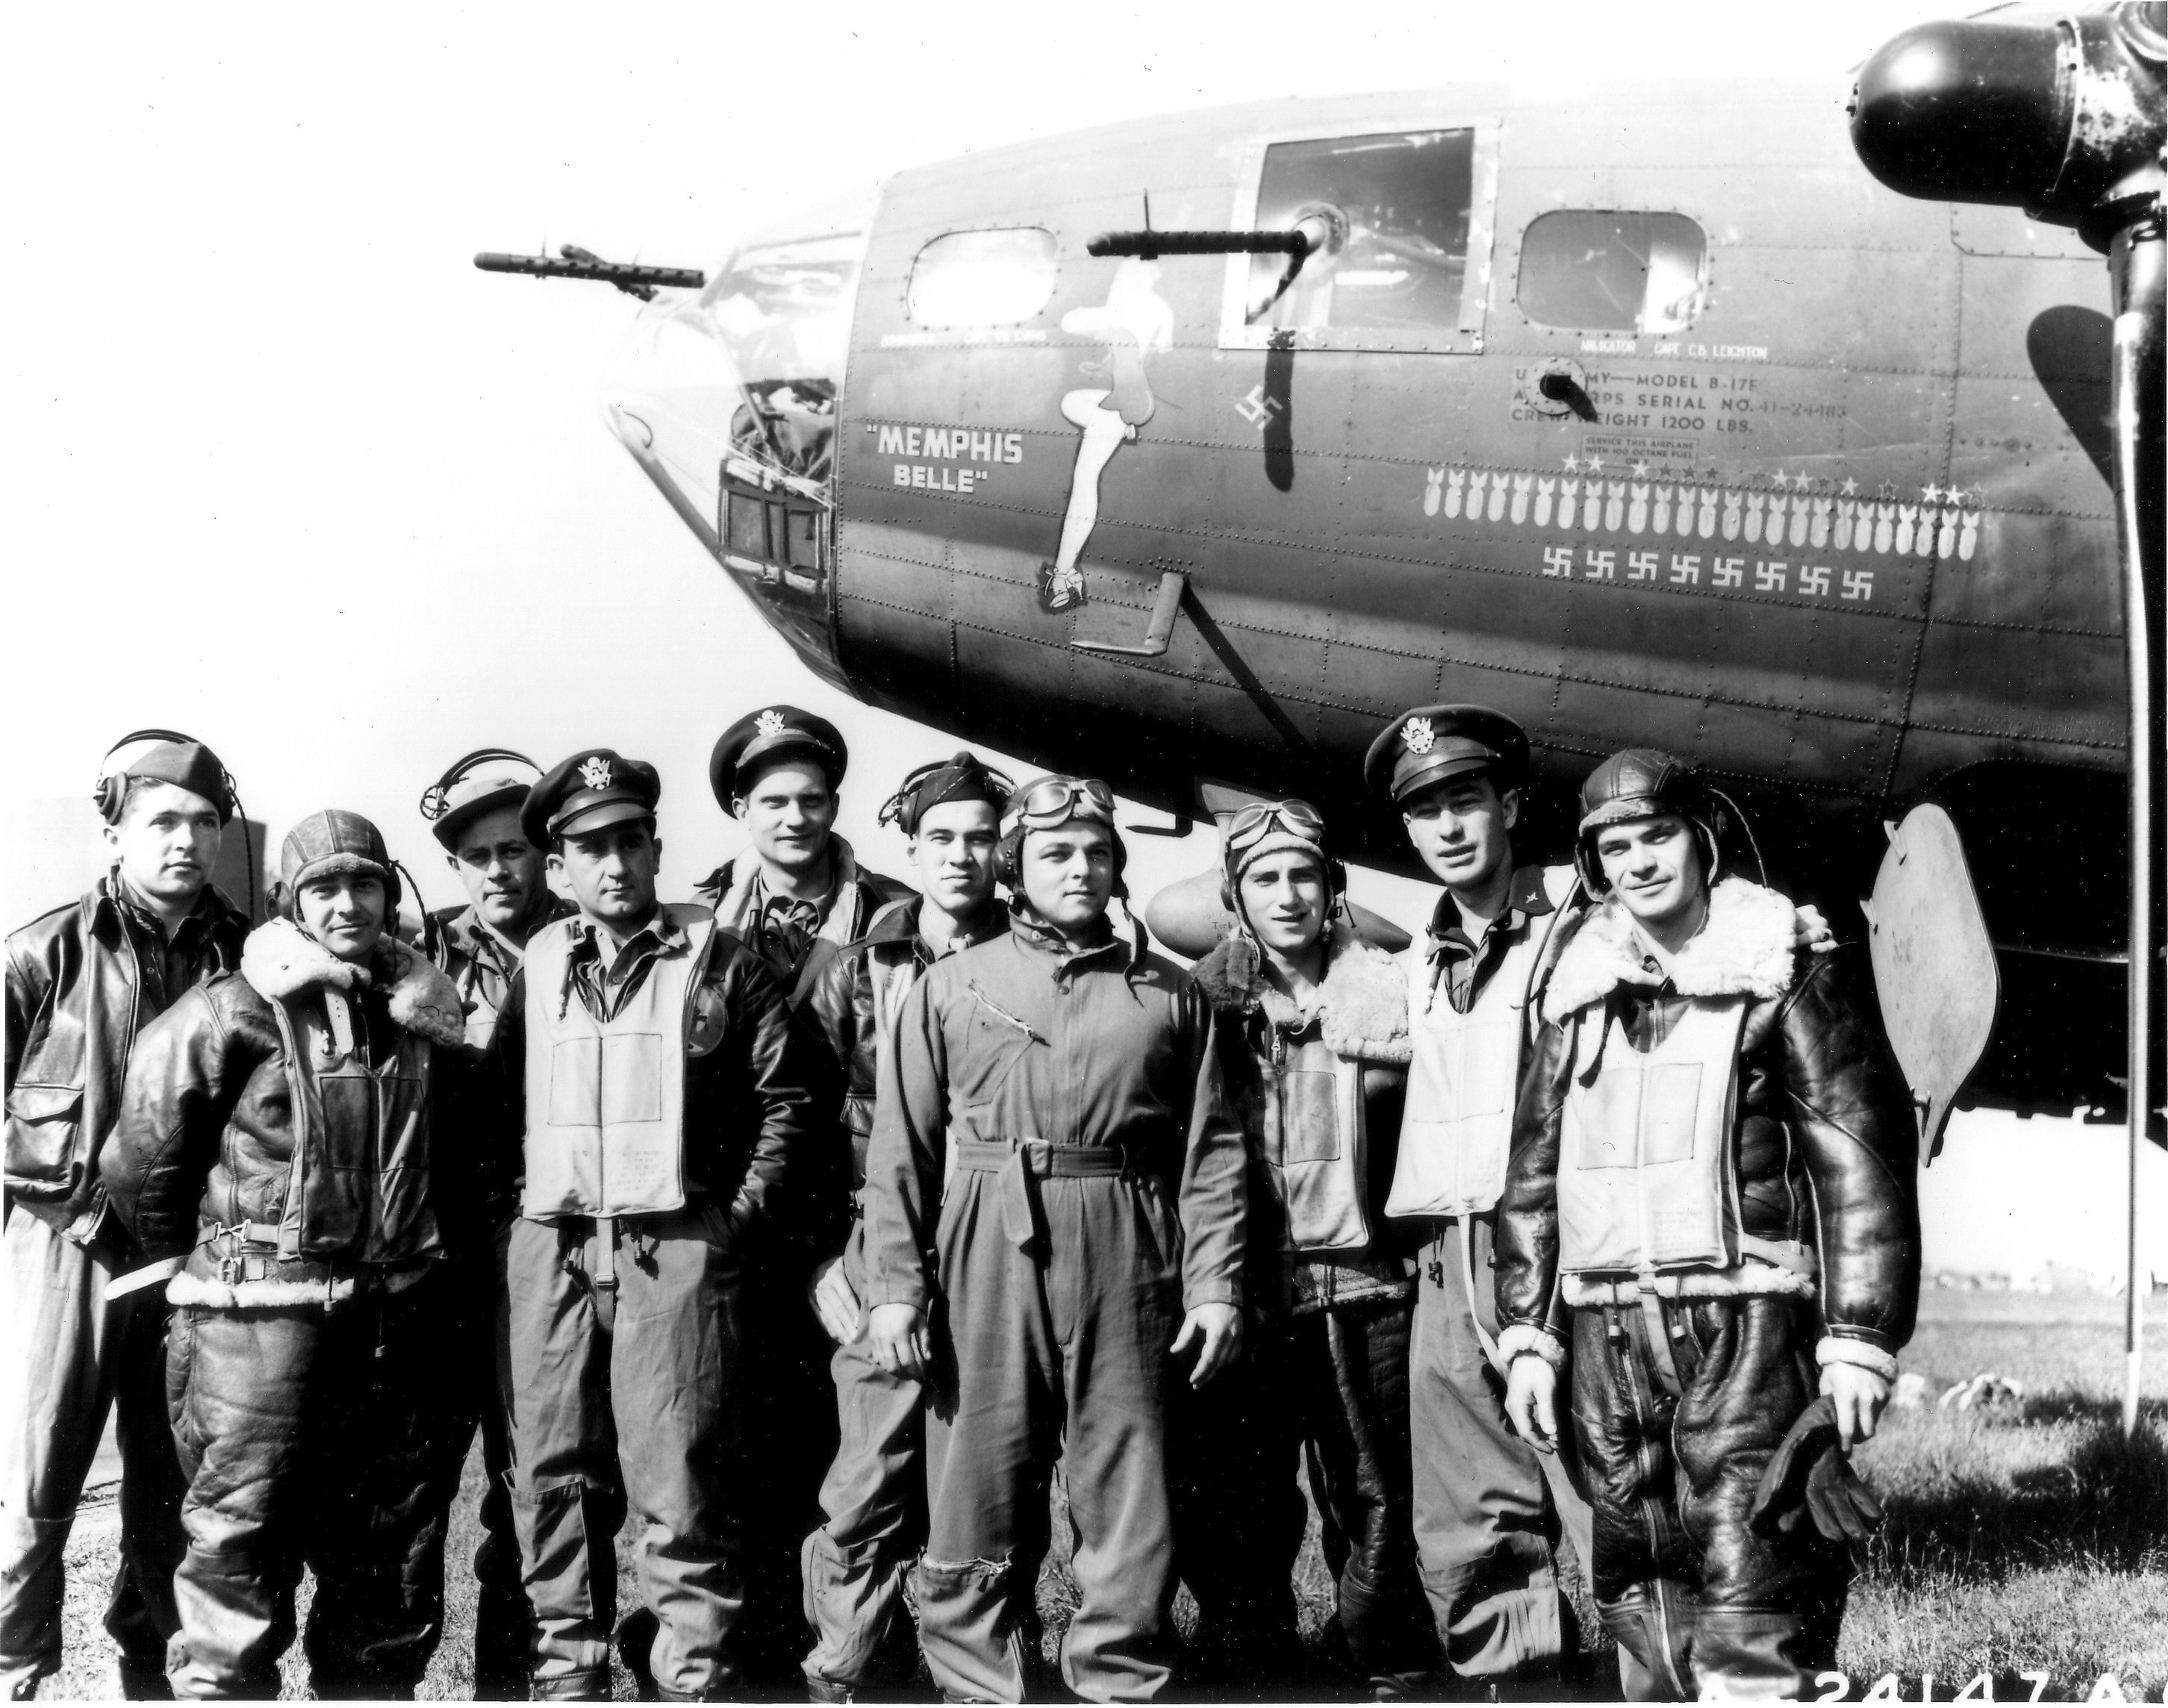 Today in history� mission accomplished for Memphis Belle